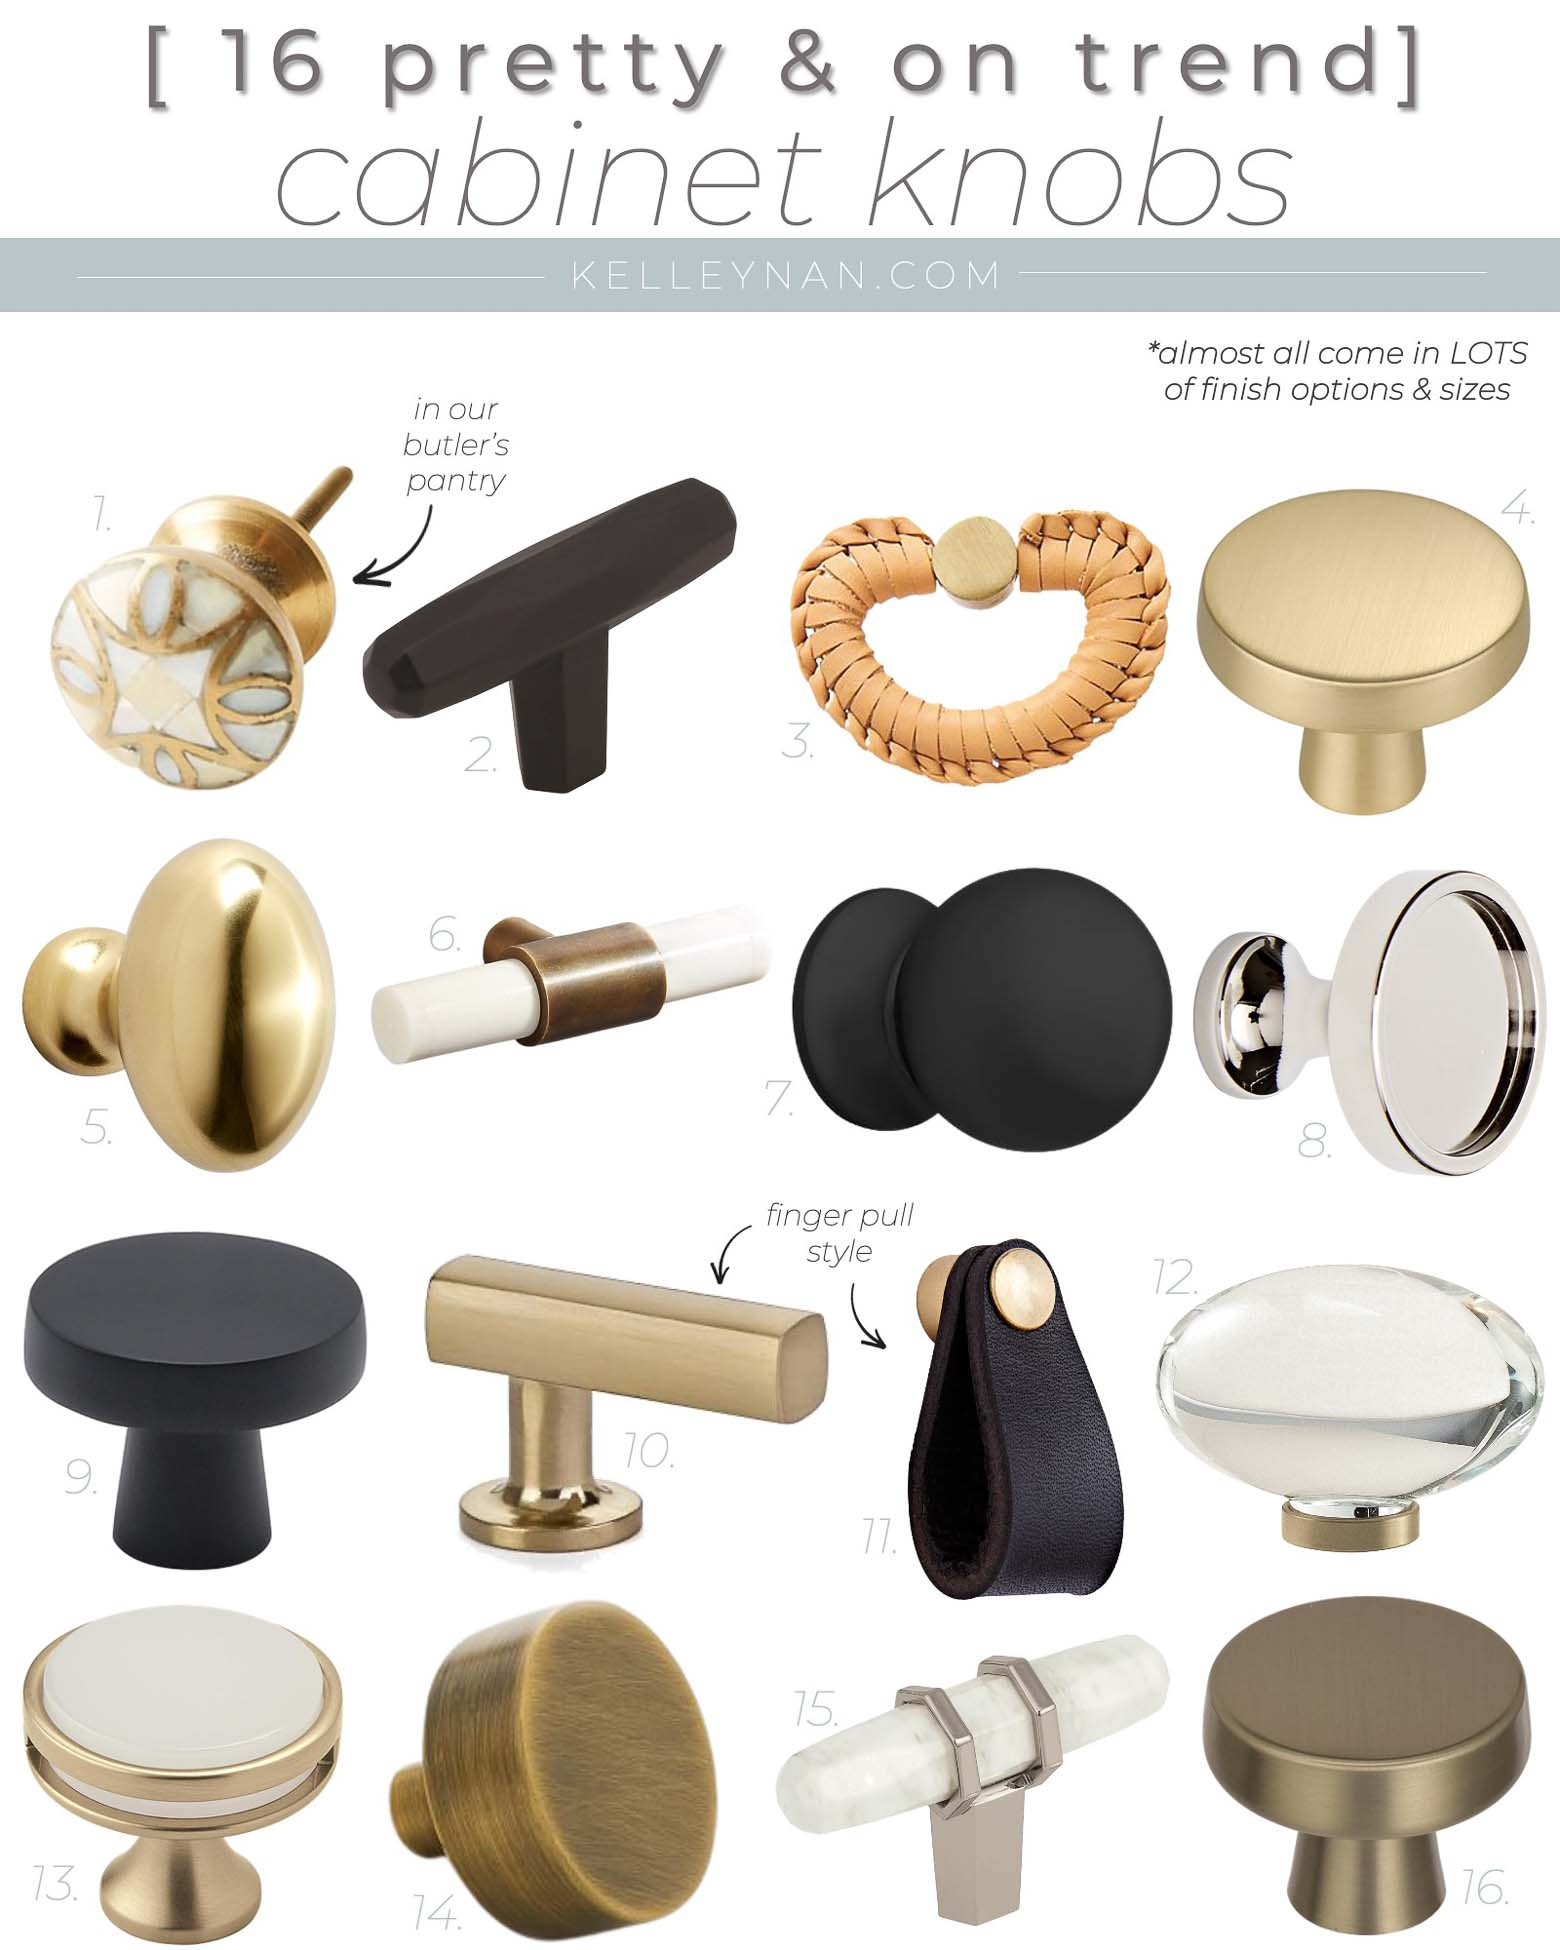 16 Pretty Cabinet Knobs for the Kitchen, Bathroom, and Accent Pieces of Furniture Like Dressers!